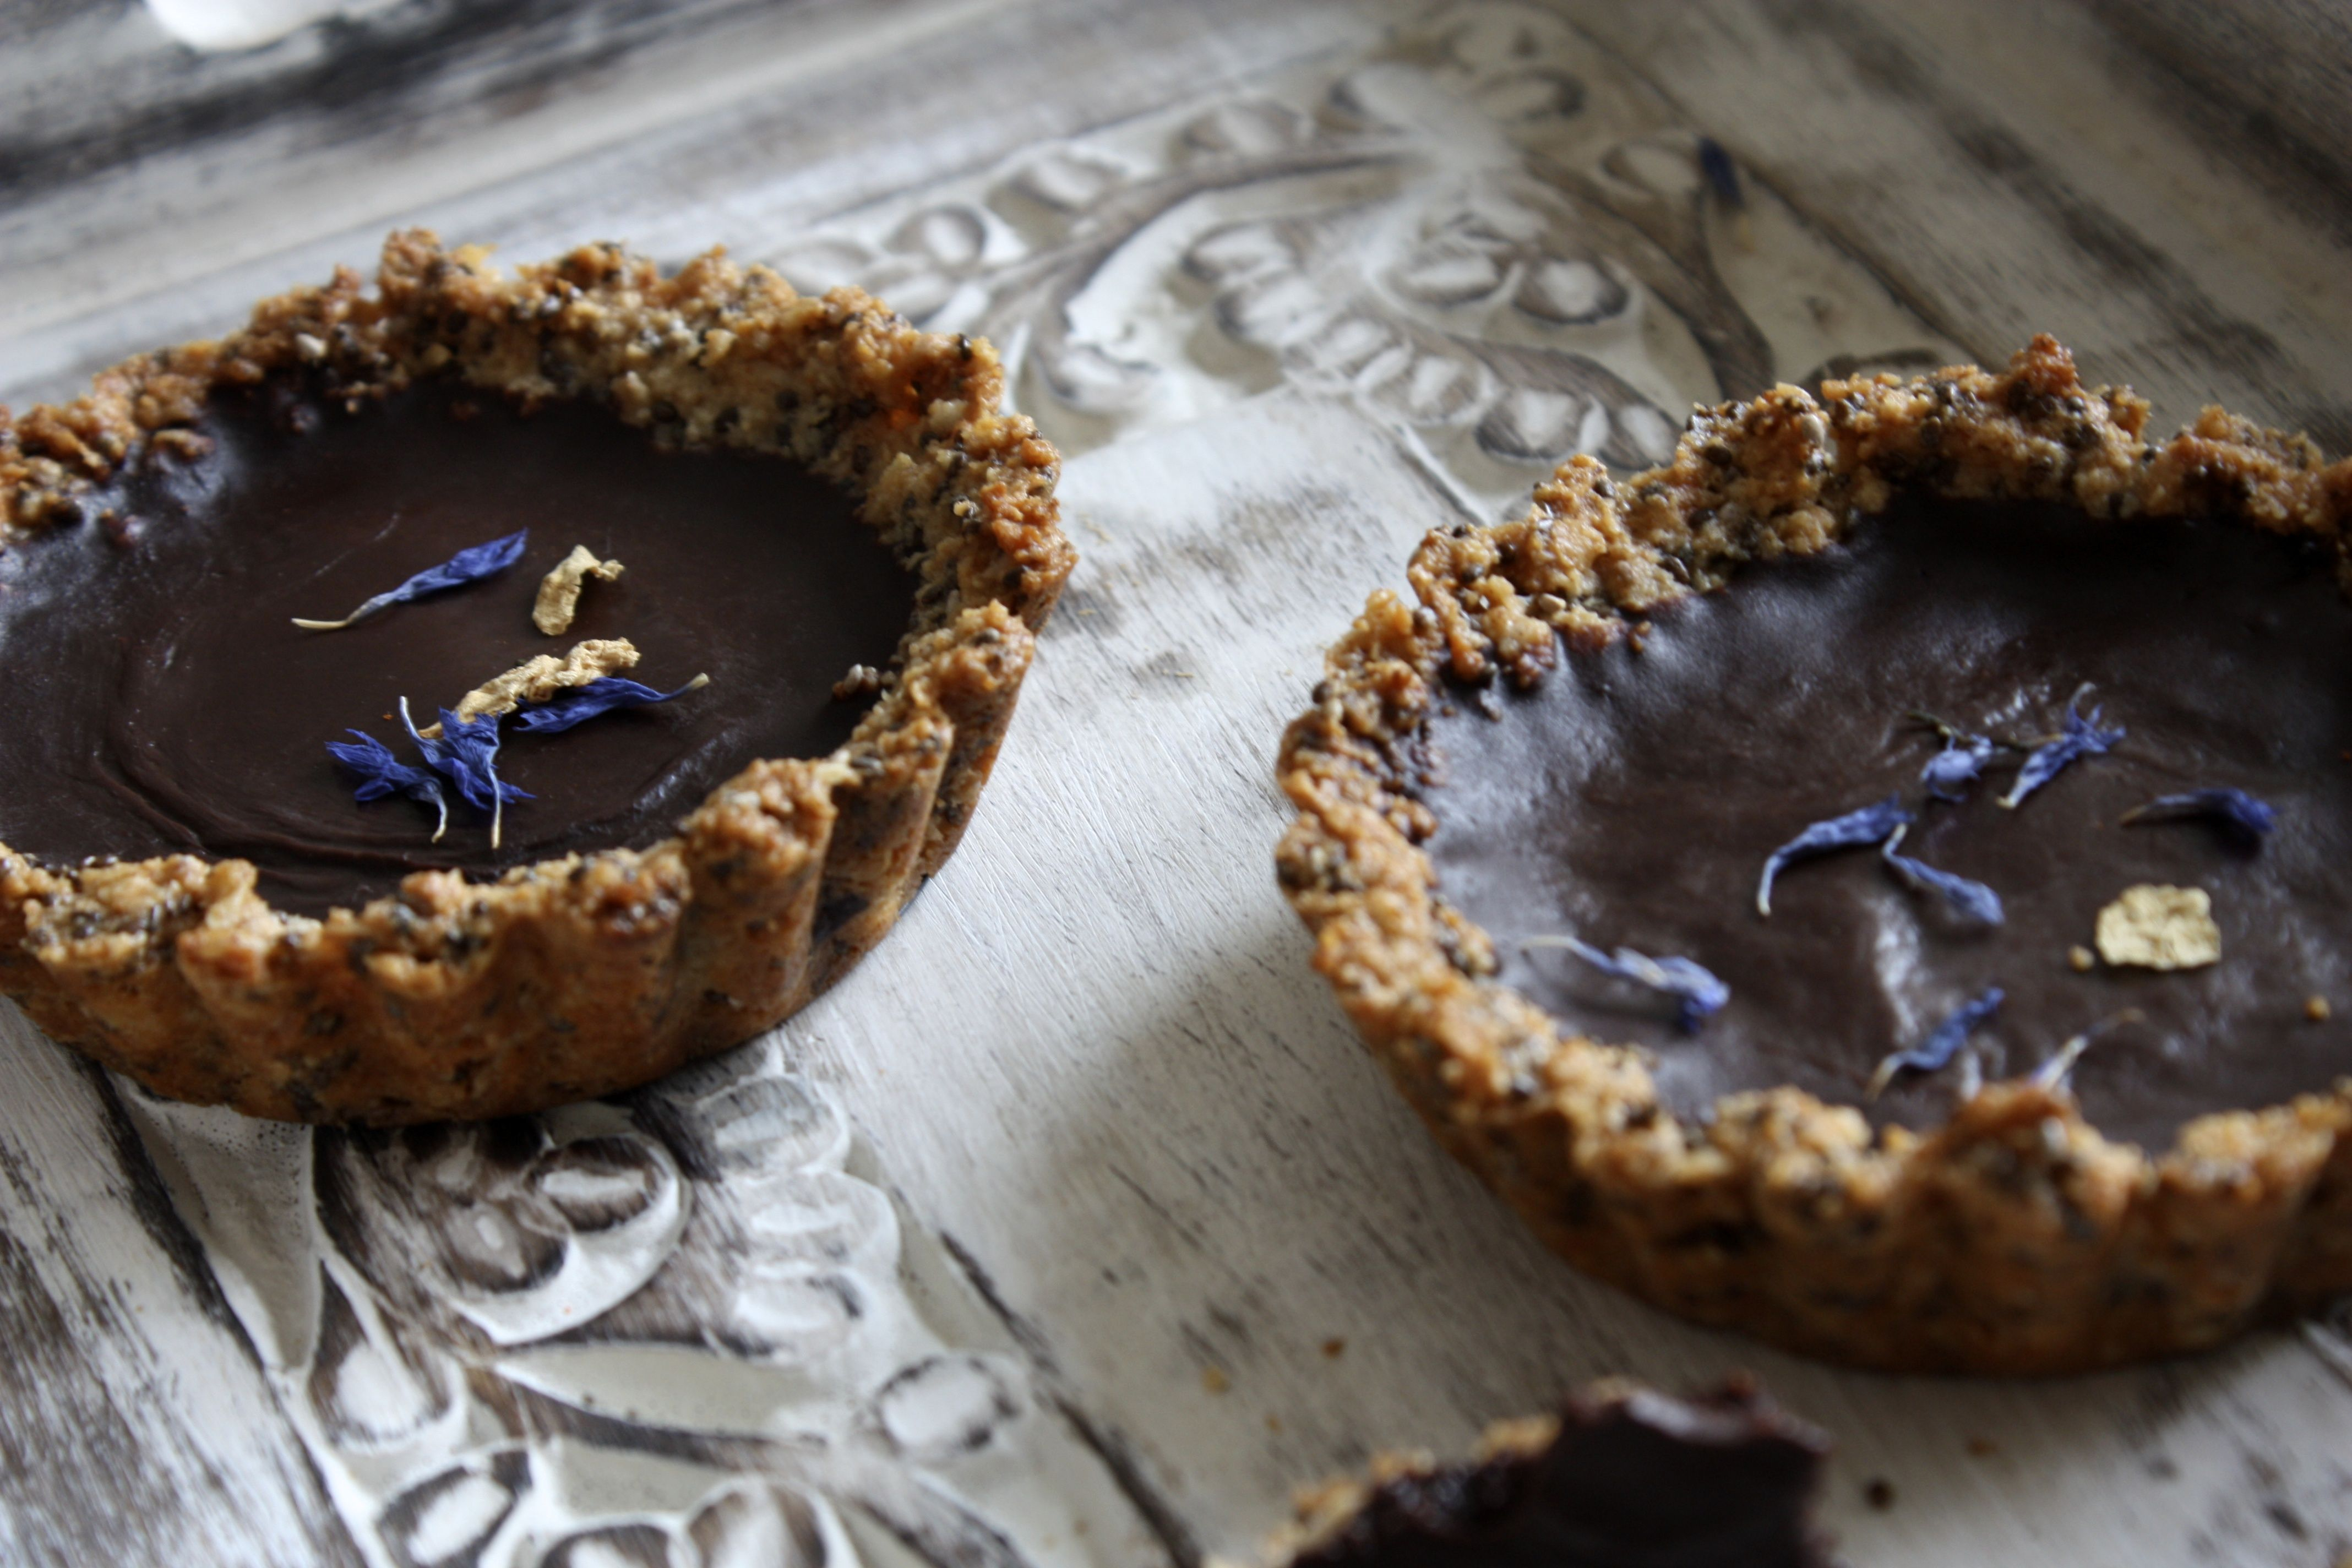 Getting Vegan up in here with some dark chocolate-rose tarts